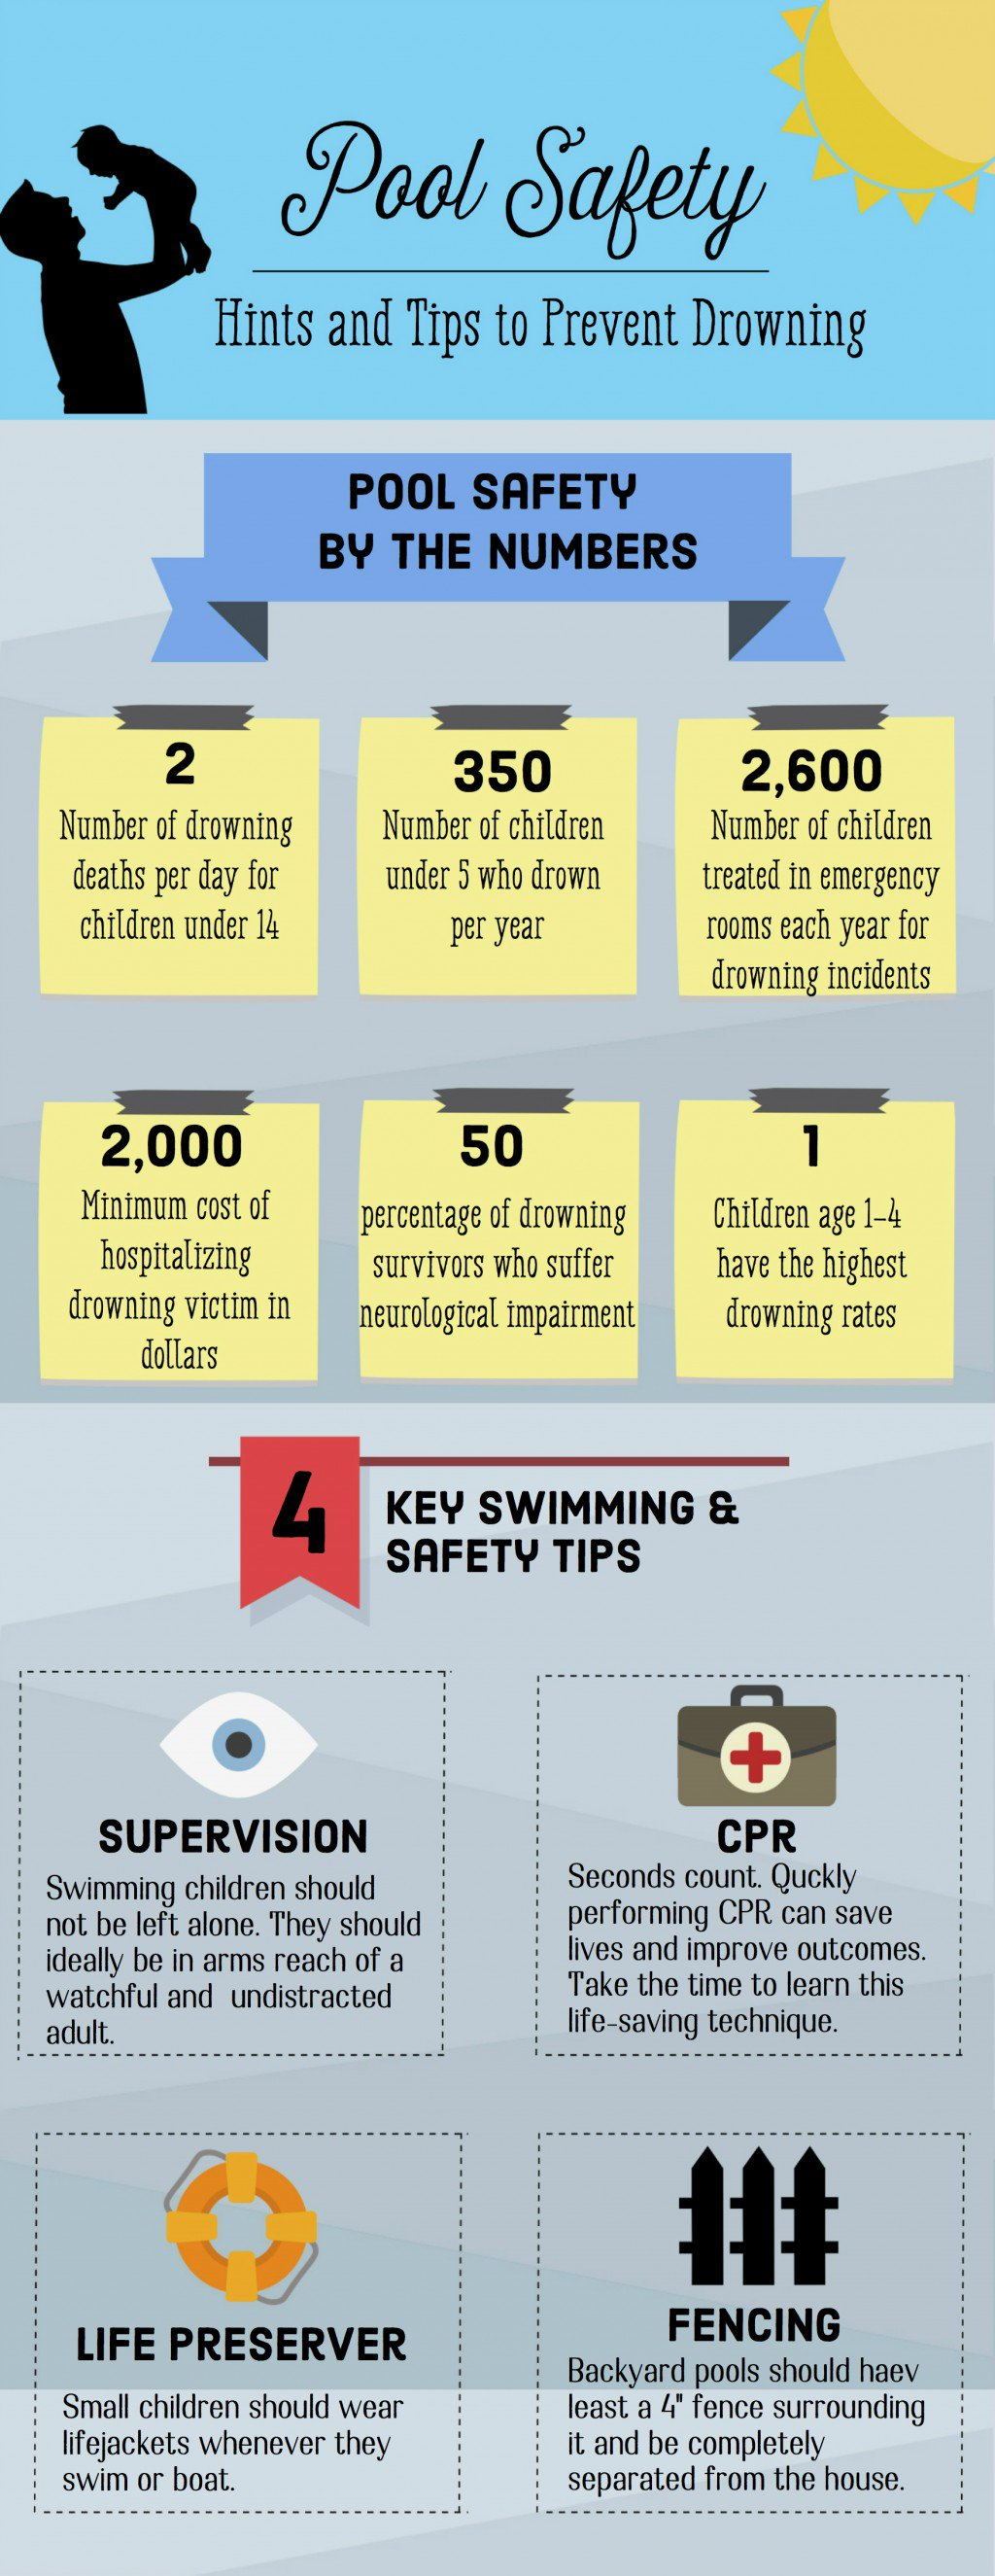 pool safety, hints and tips to prevent drowning